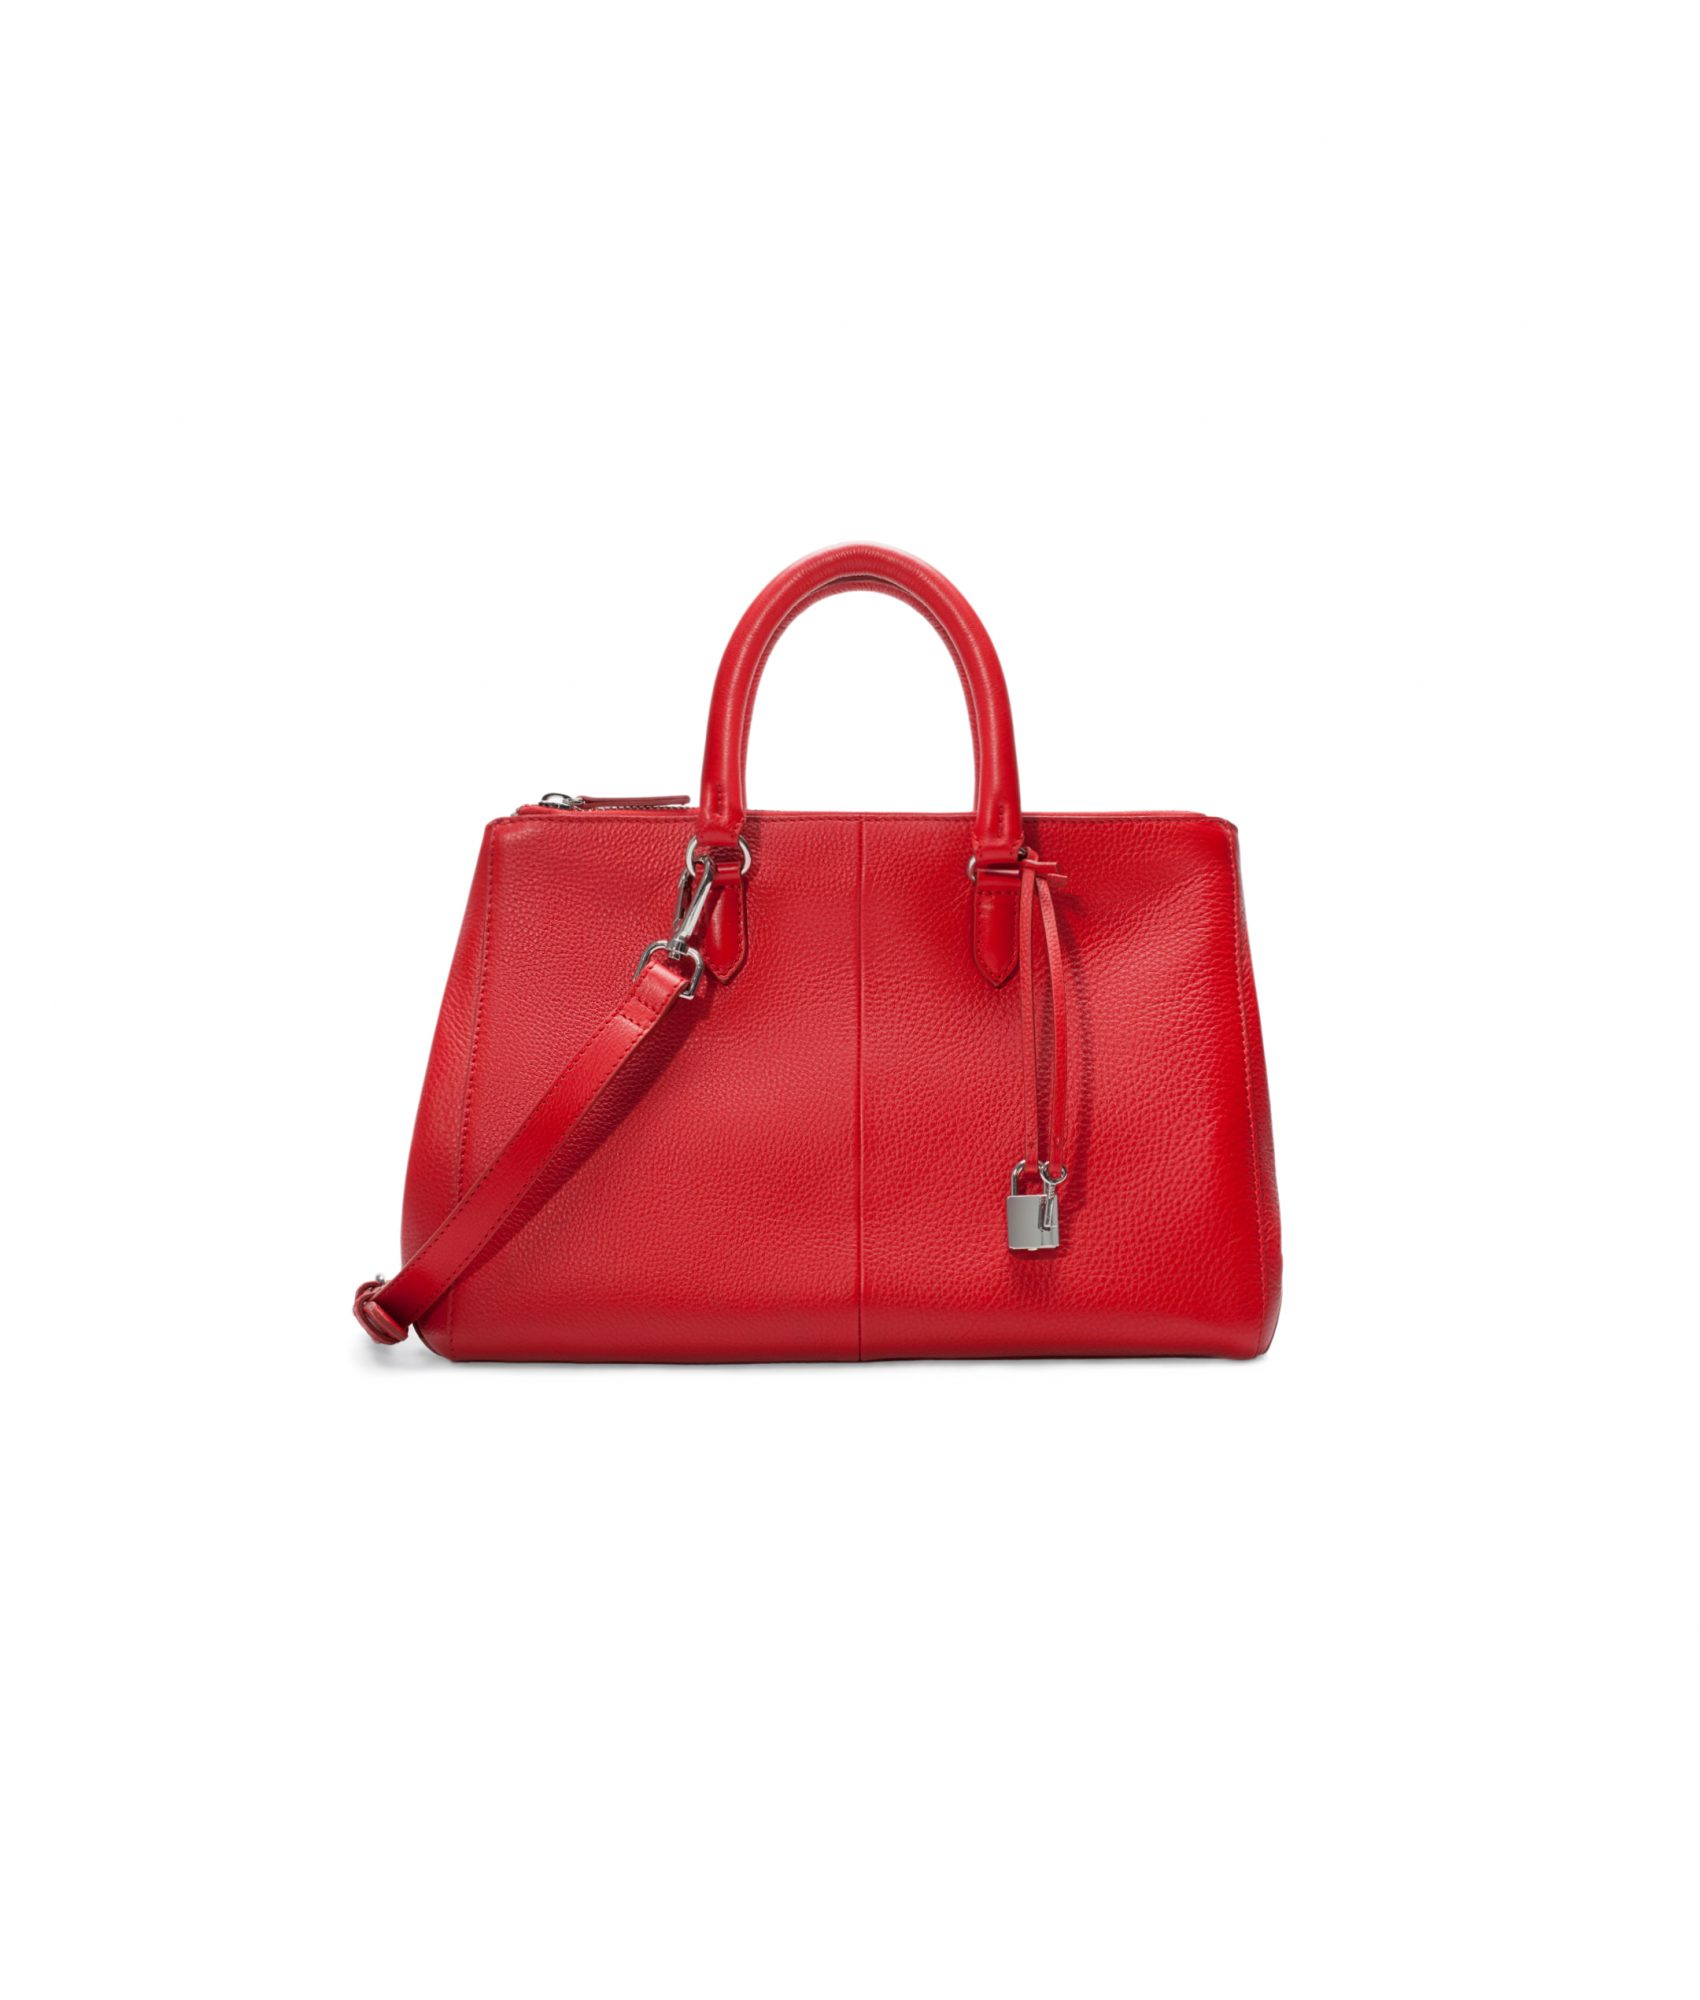 Zara Leather City Bag with Zips Red